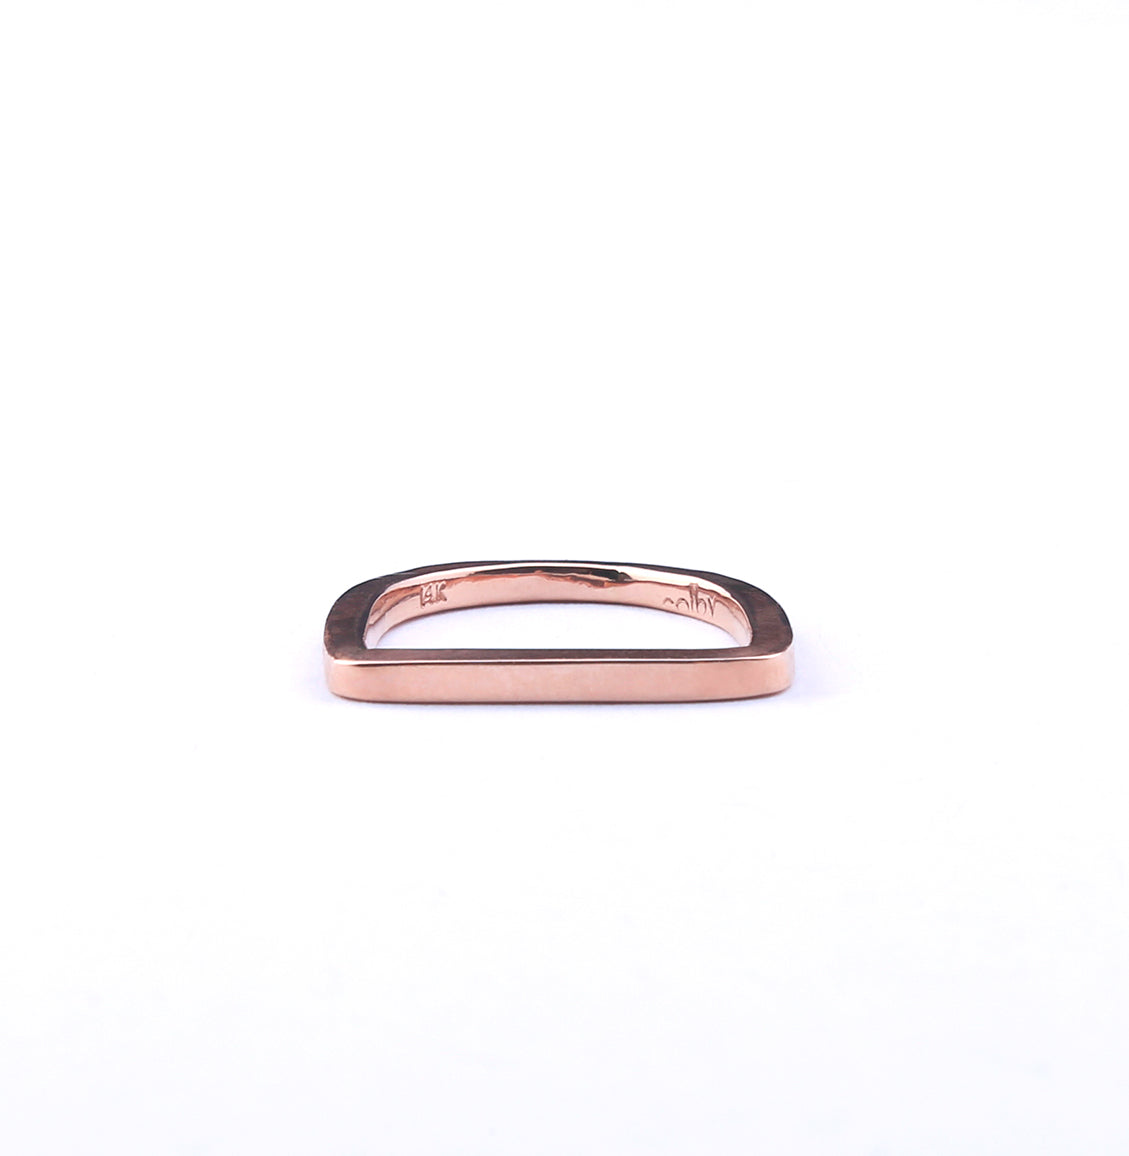 14k Rose gold bar ring.